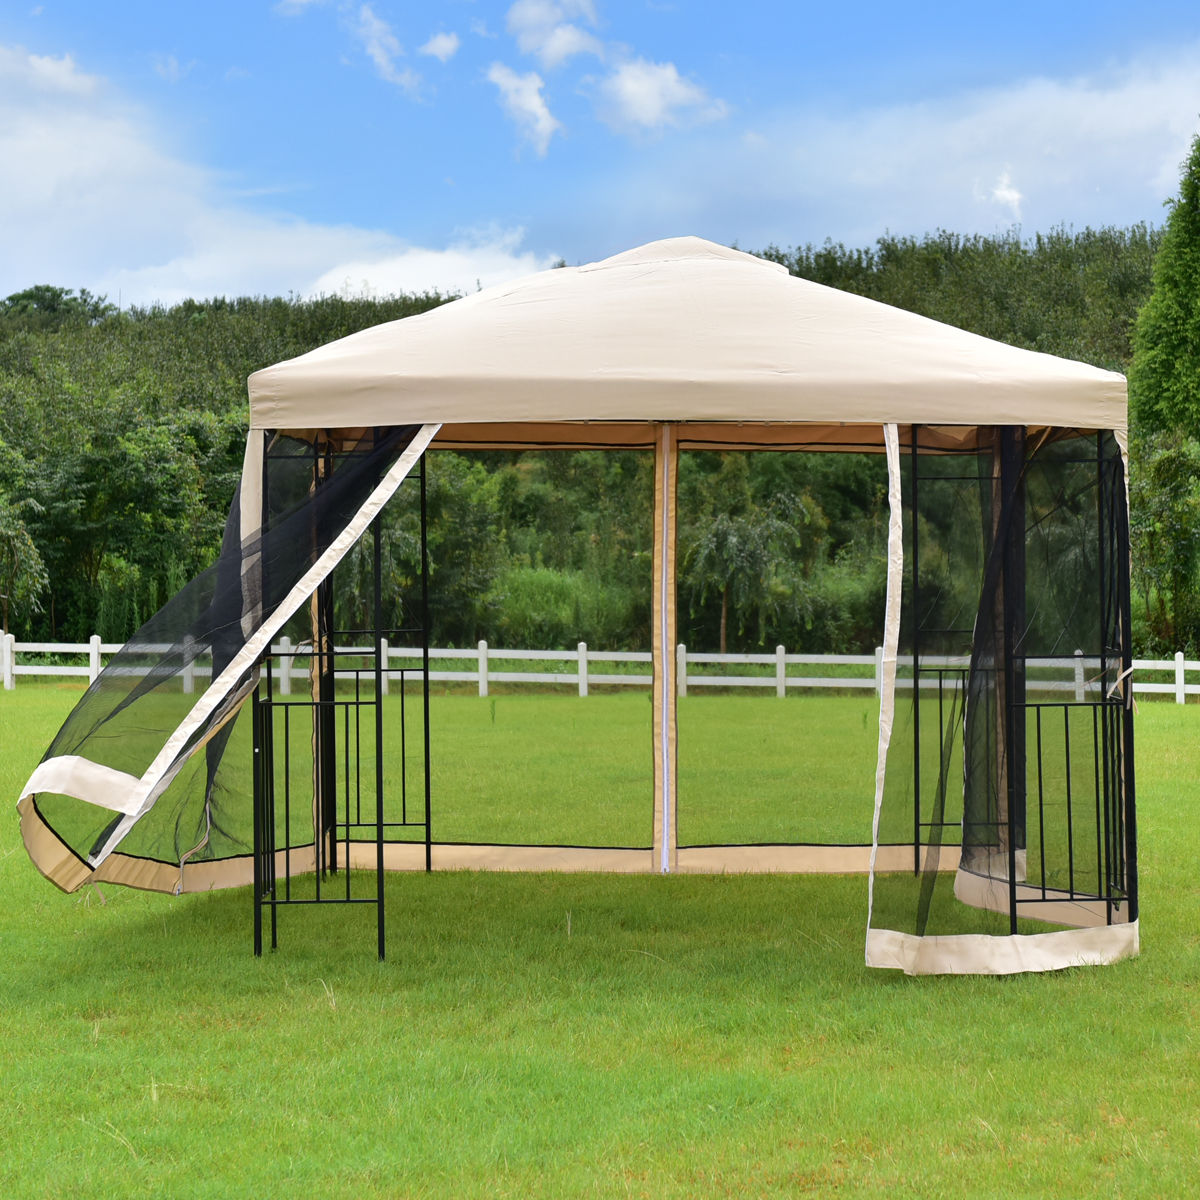 Goplus 10'x10' Gazebo Canopy Shelter Patio Wedding Party Tent Outdoor Awning with Netting Canopy Tent OP3182 yp80100 80x100cm 80x200cm 80x300cm clear window awning diy overhead door canopy decorator patio cover